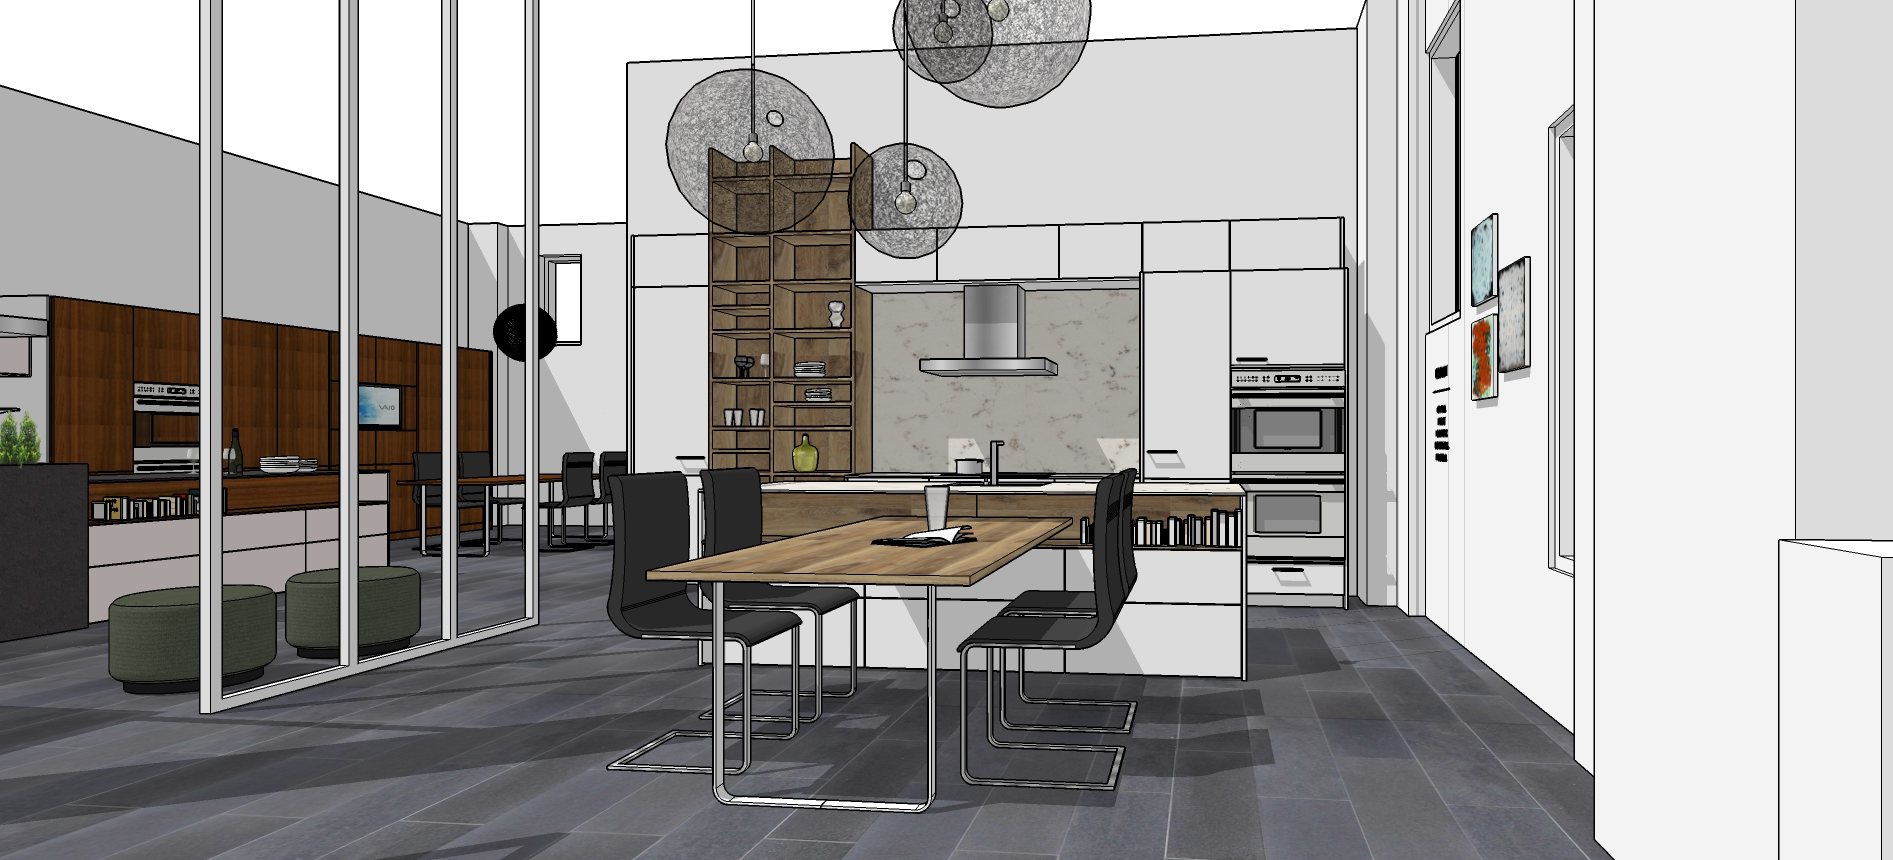 Working In Sketchup Mick Ricereto Interior Product Design